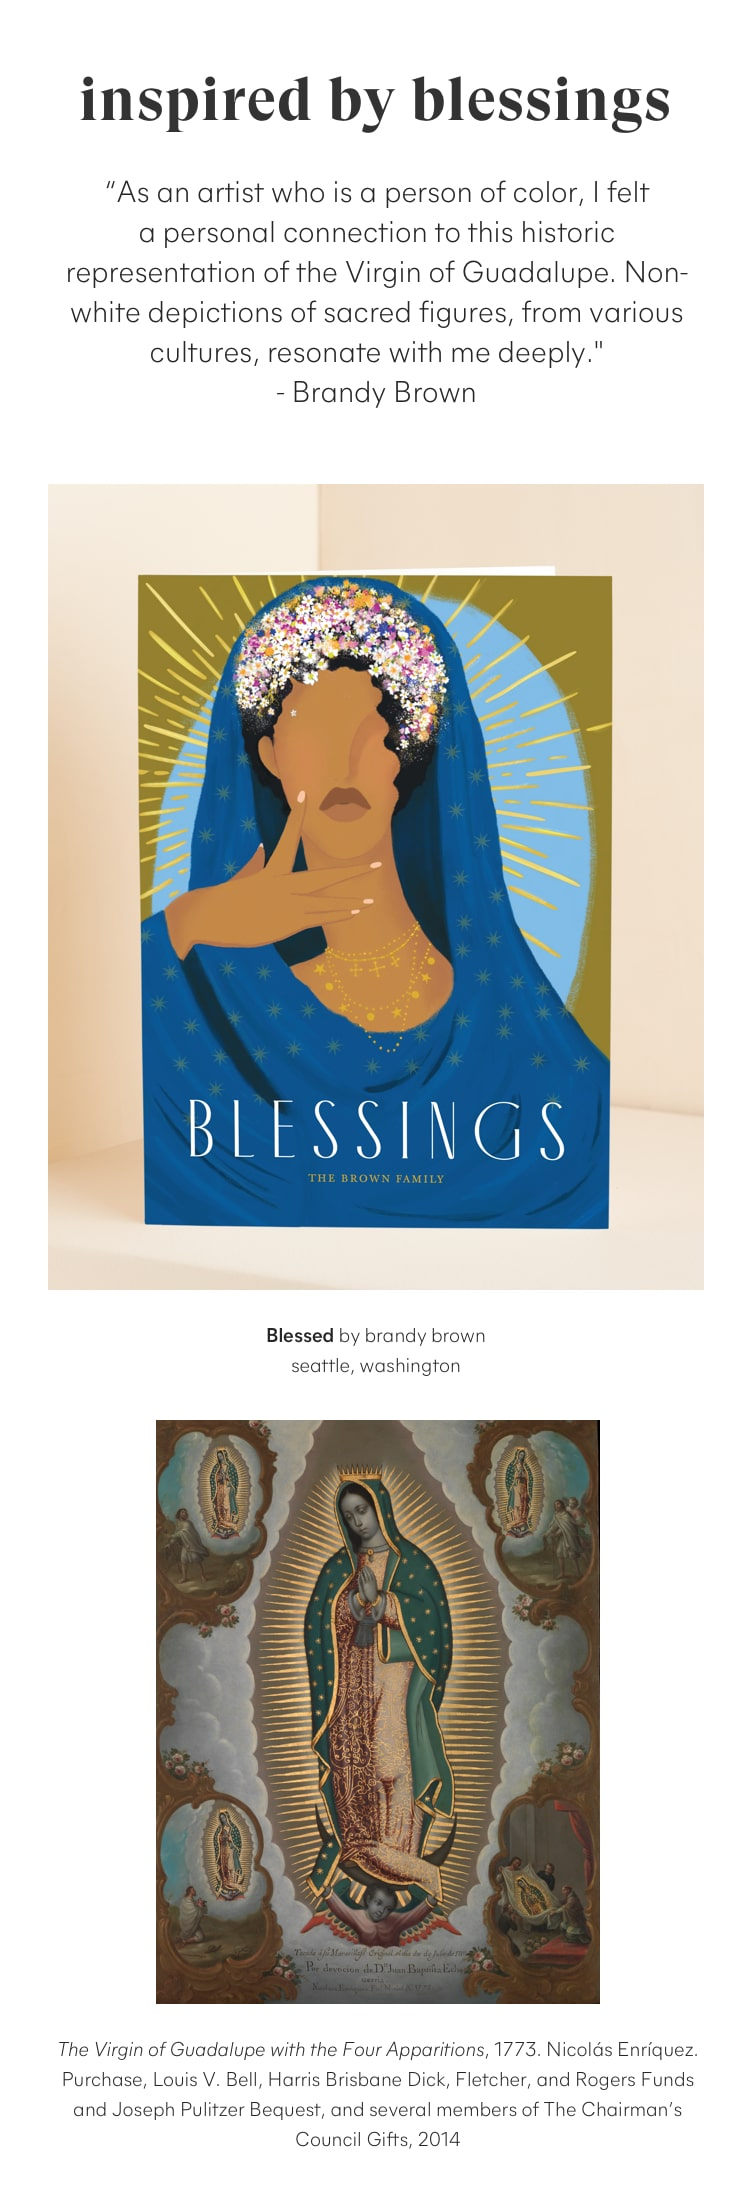 The Met - Slide 10: Blessed